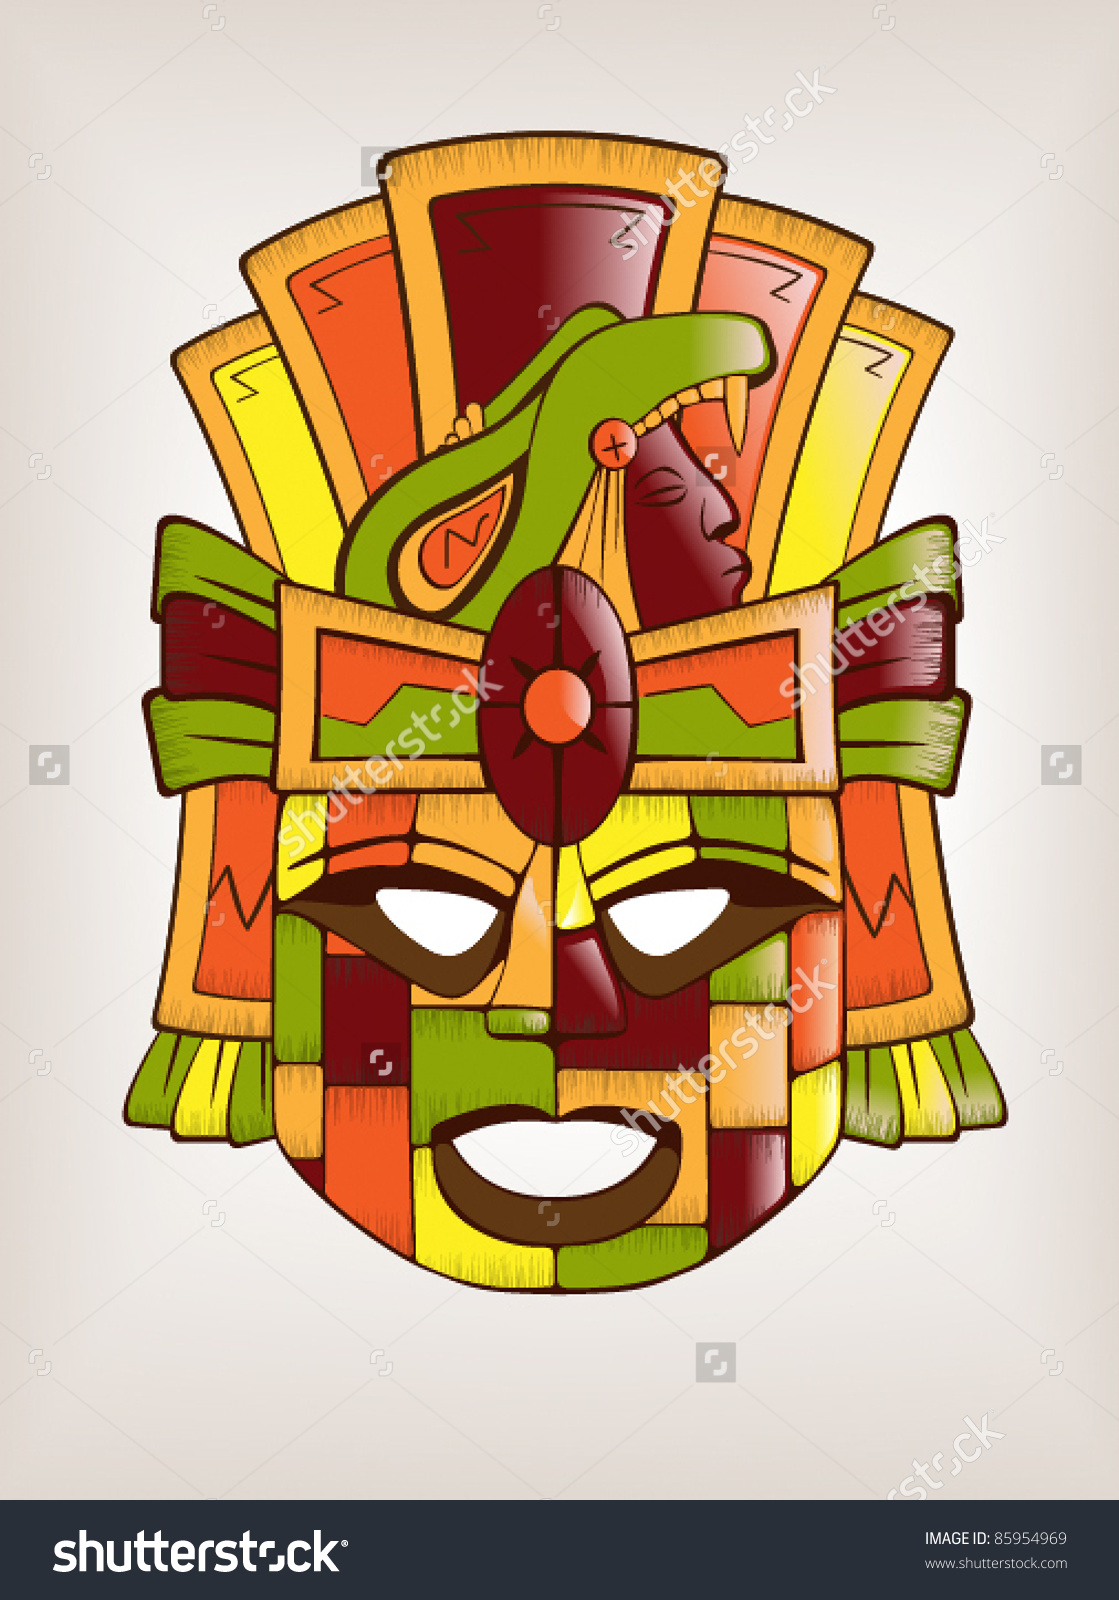 Mexican Mayan Aztec Wooden Mask Stock Vector 85954969.